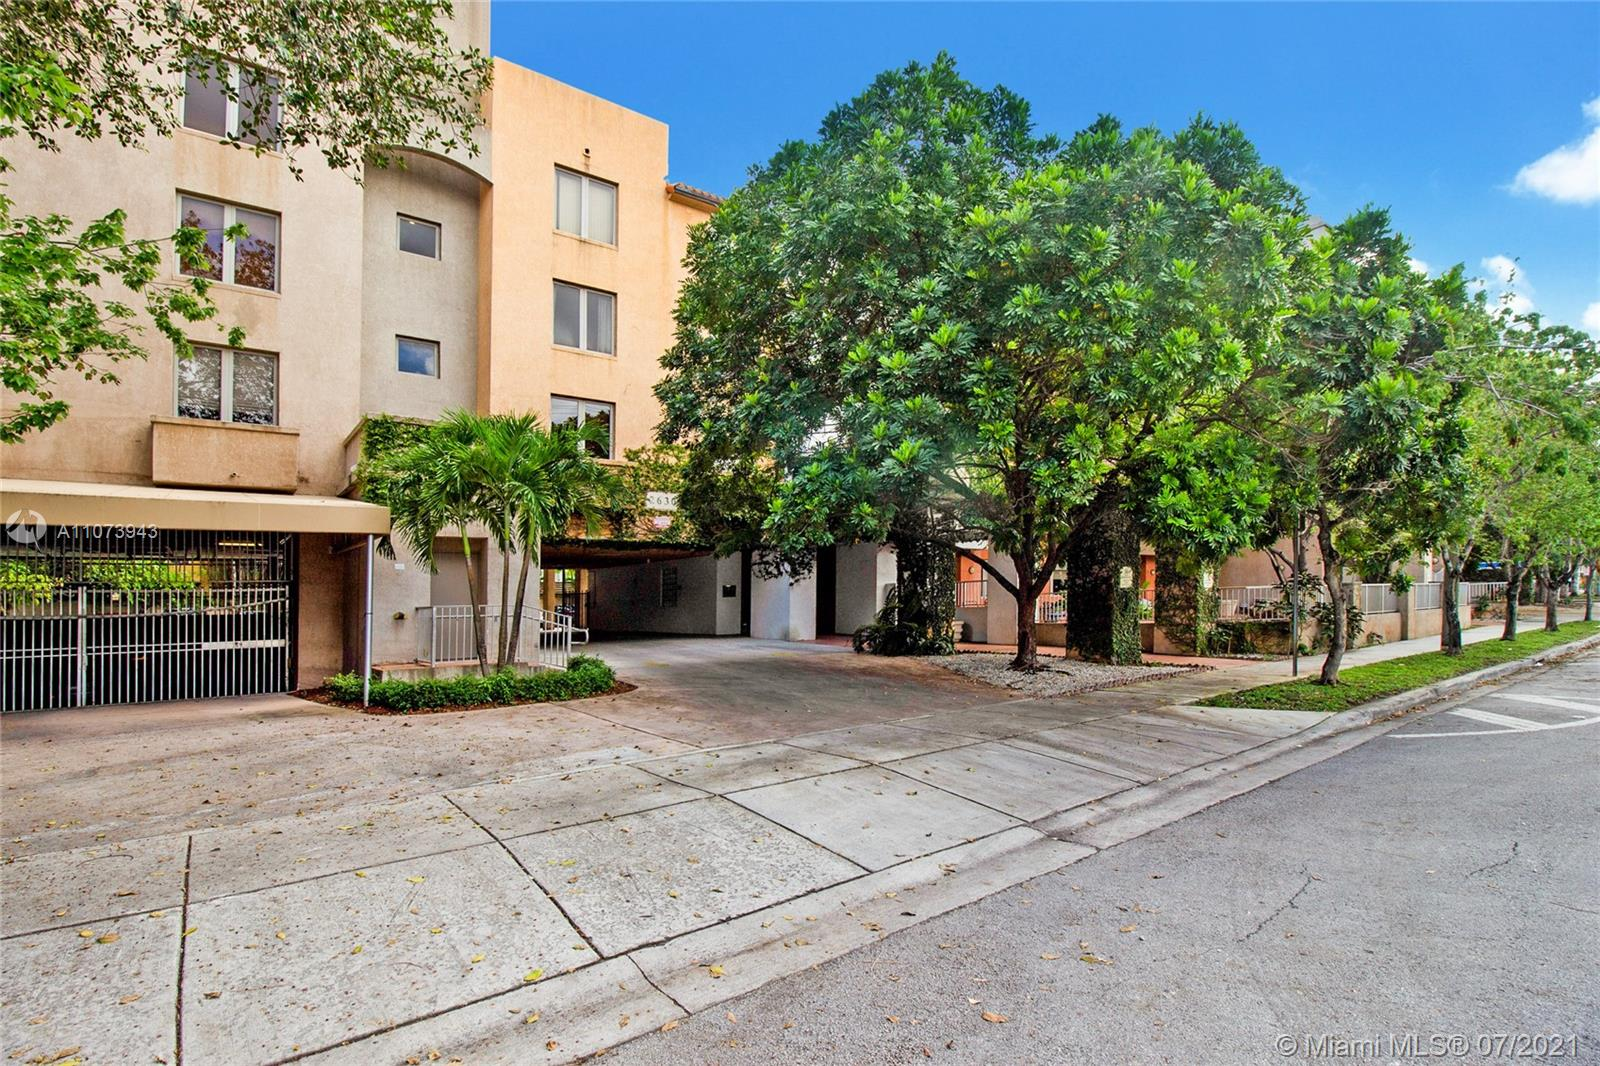 Fantastic location in Coconut Grove. Top Floor 1 bedroom apartment. Bamboo wood floors, lots of natural light. Impact windows, move-in condition. Extra large storage room bonus located across the unit in the hallway. One underground parking space and guest parking. Great boutique building with a gym. Proximity to parks, and easy access to I-95, airport, Coral Gables, and Brickell.